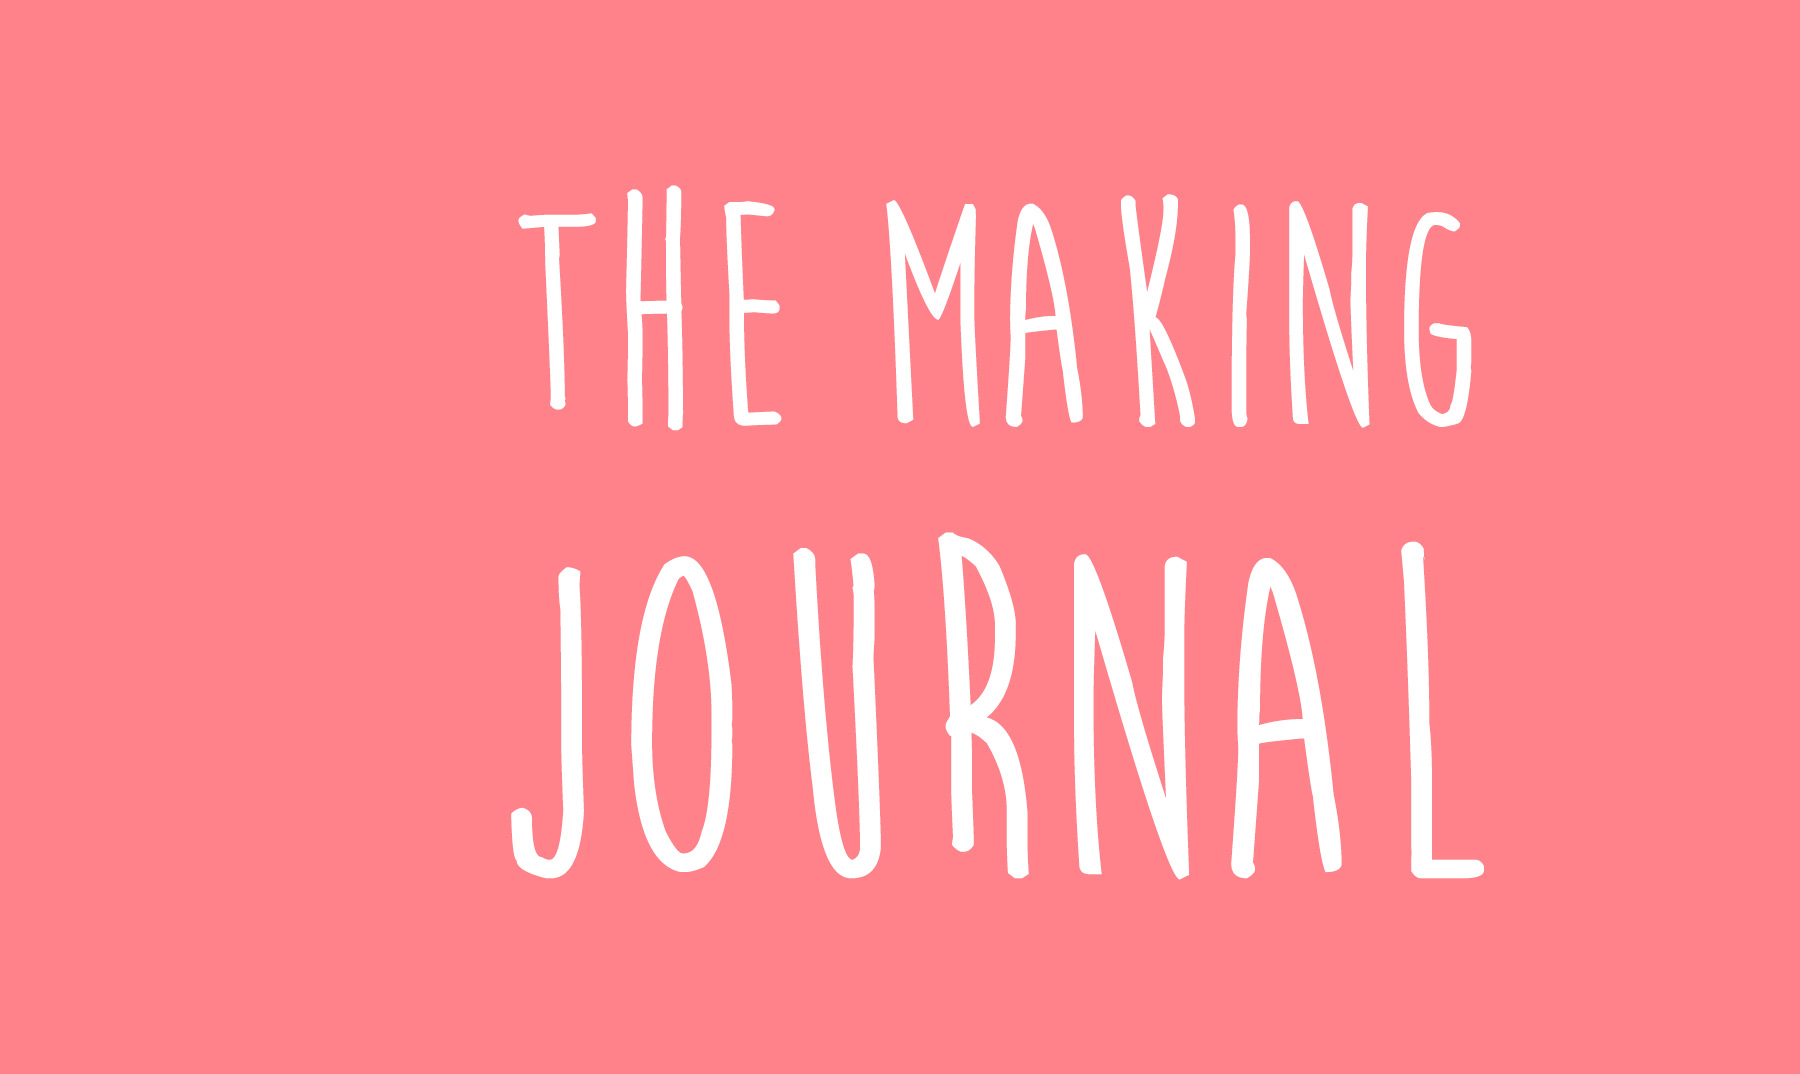 The Making Journal - Sizzix Die Cutting Inspiration